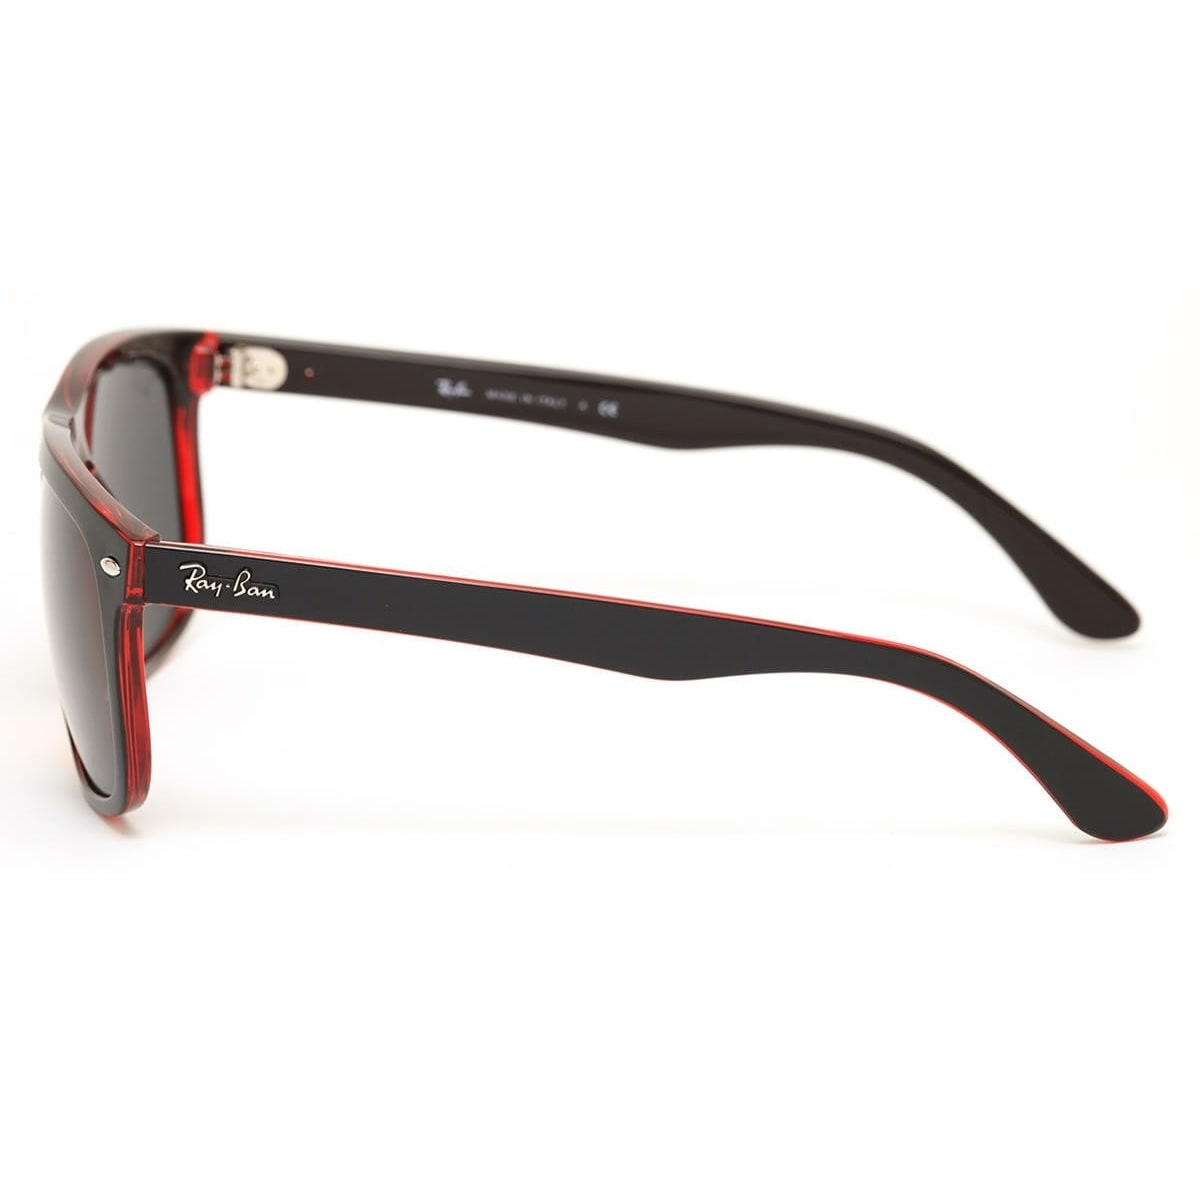 2bc47543595 ... spain shop ray ban rb4147 617187 mens black red frame grey classic 60mm  lens sunglasses free